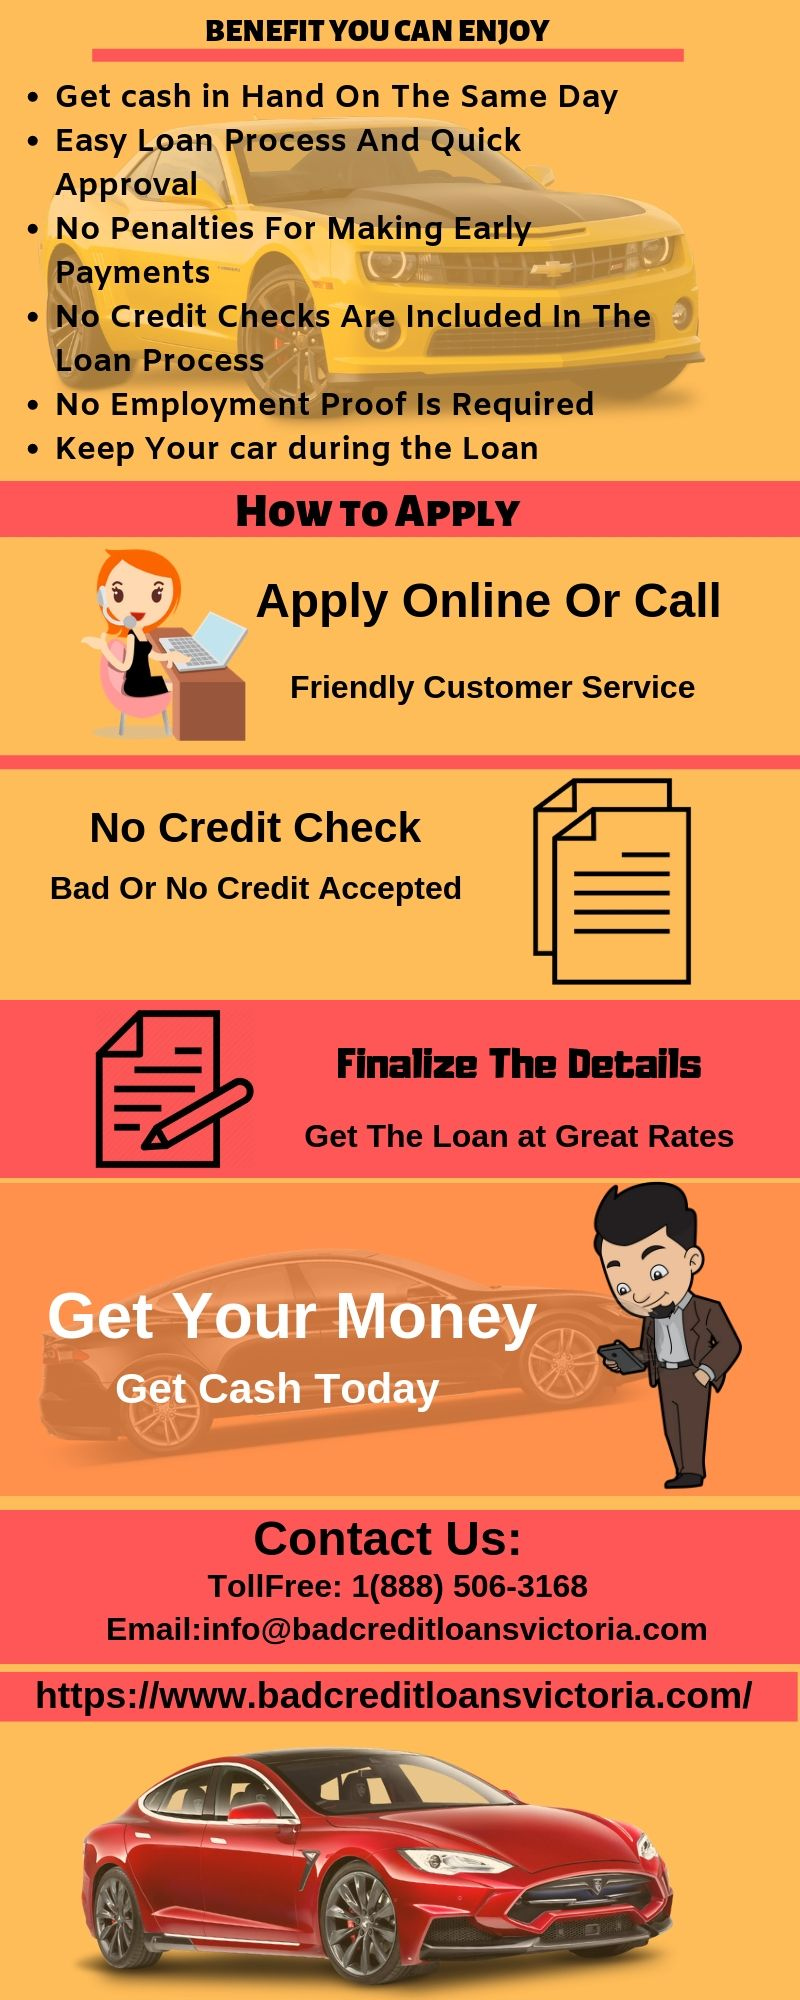 Bad Credit Car Loans Victoria A Way Get Car Title Loan In Victoria By Bad Credit Loans Victoria Bad Credit Car Loan Loans For Bad Credit No Credit Loans